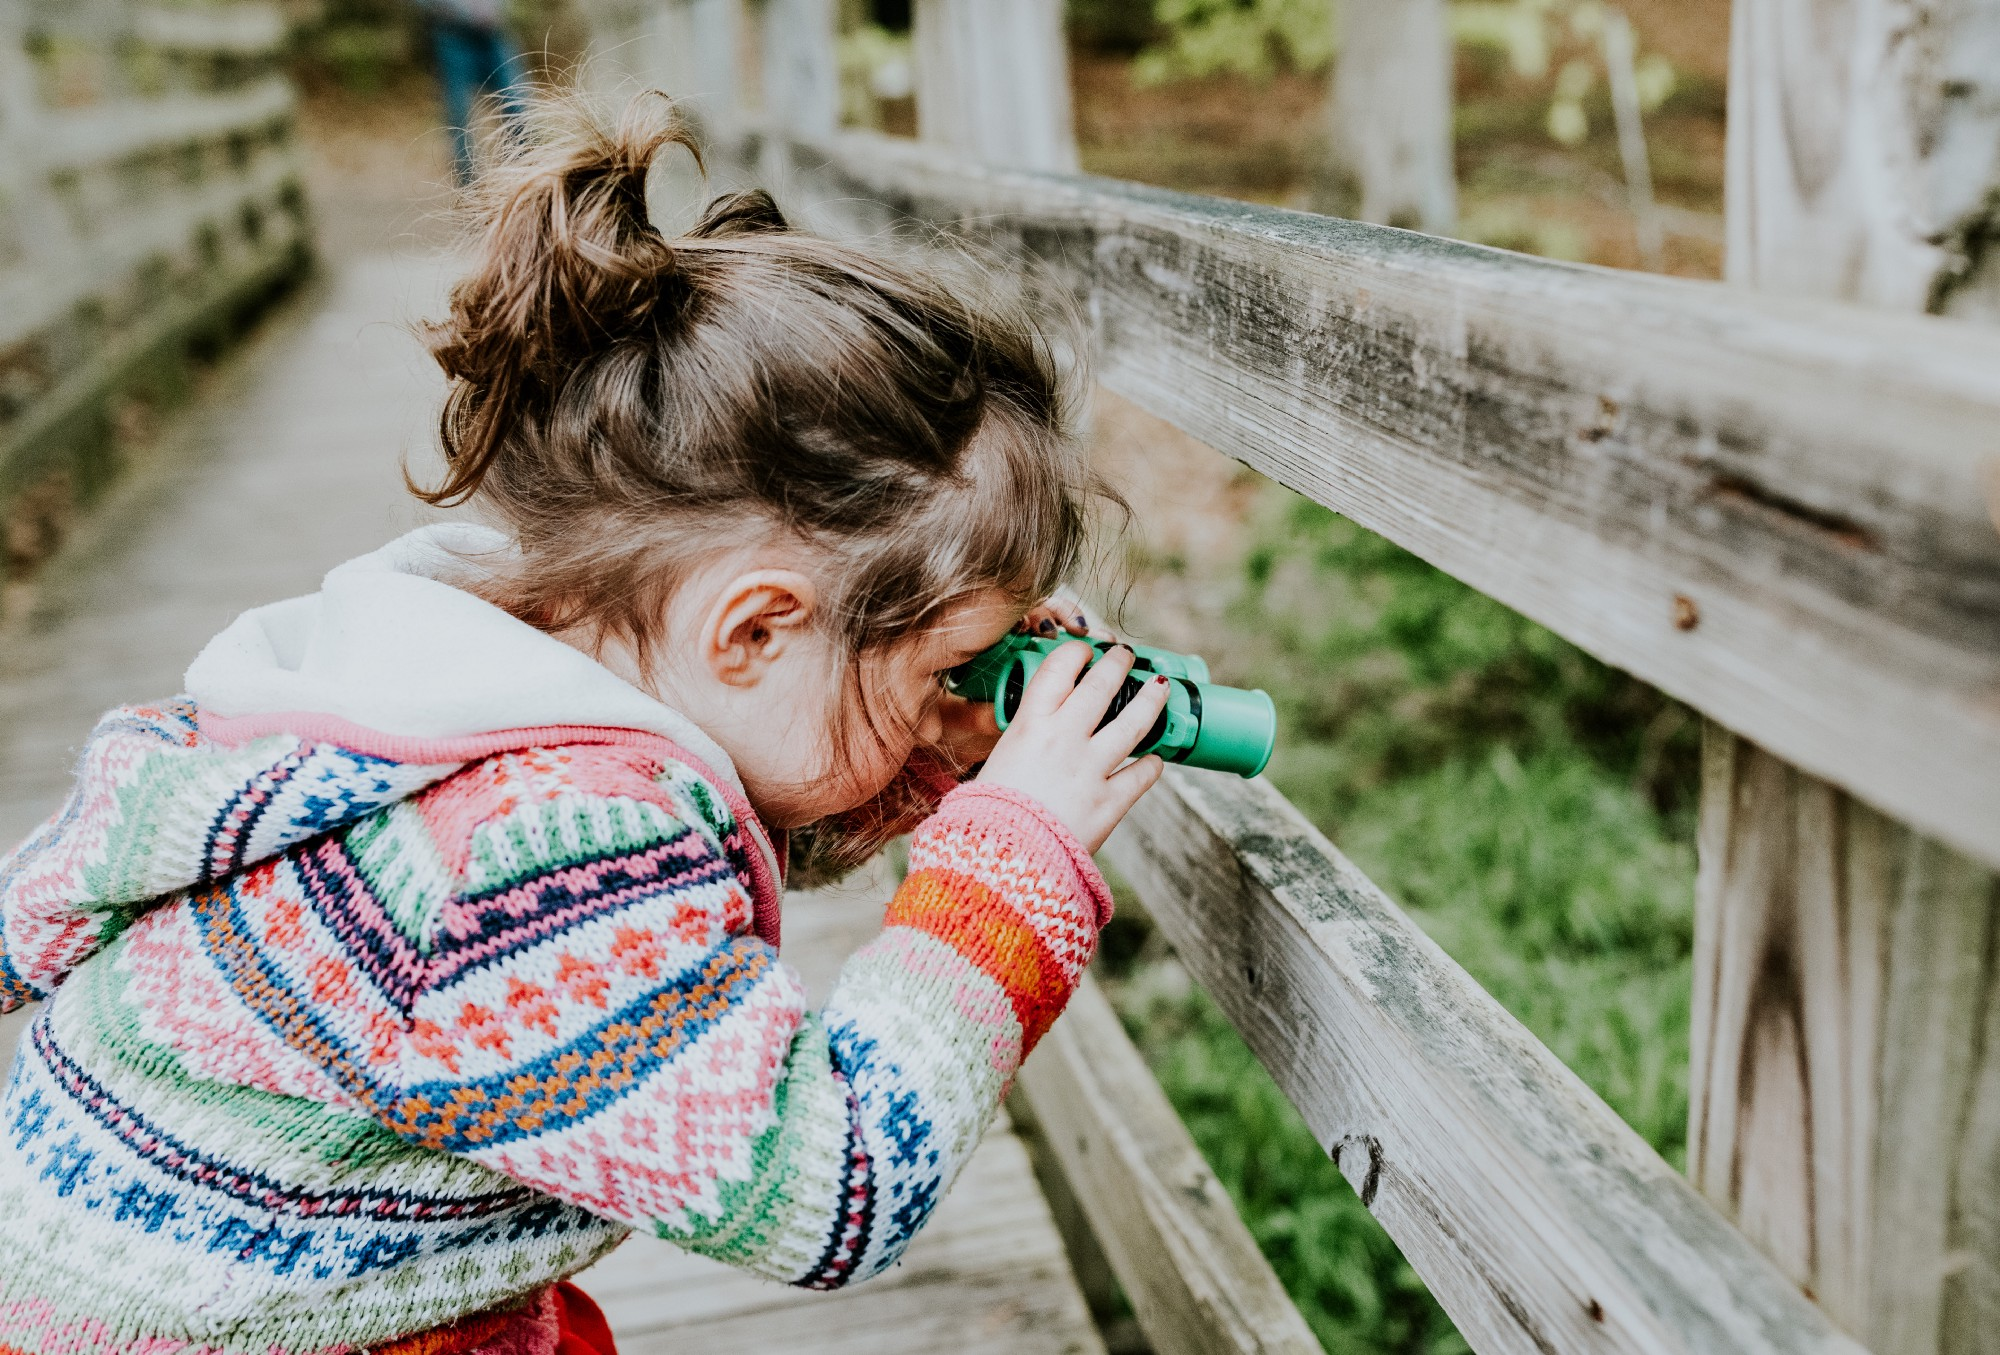 a little girl toddler standing on a bridge in her colorful winter sweater looking through her green binoculars curiously.